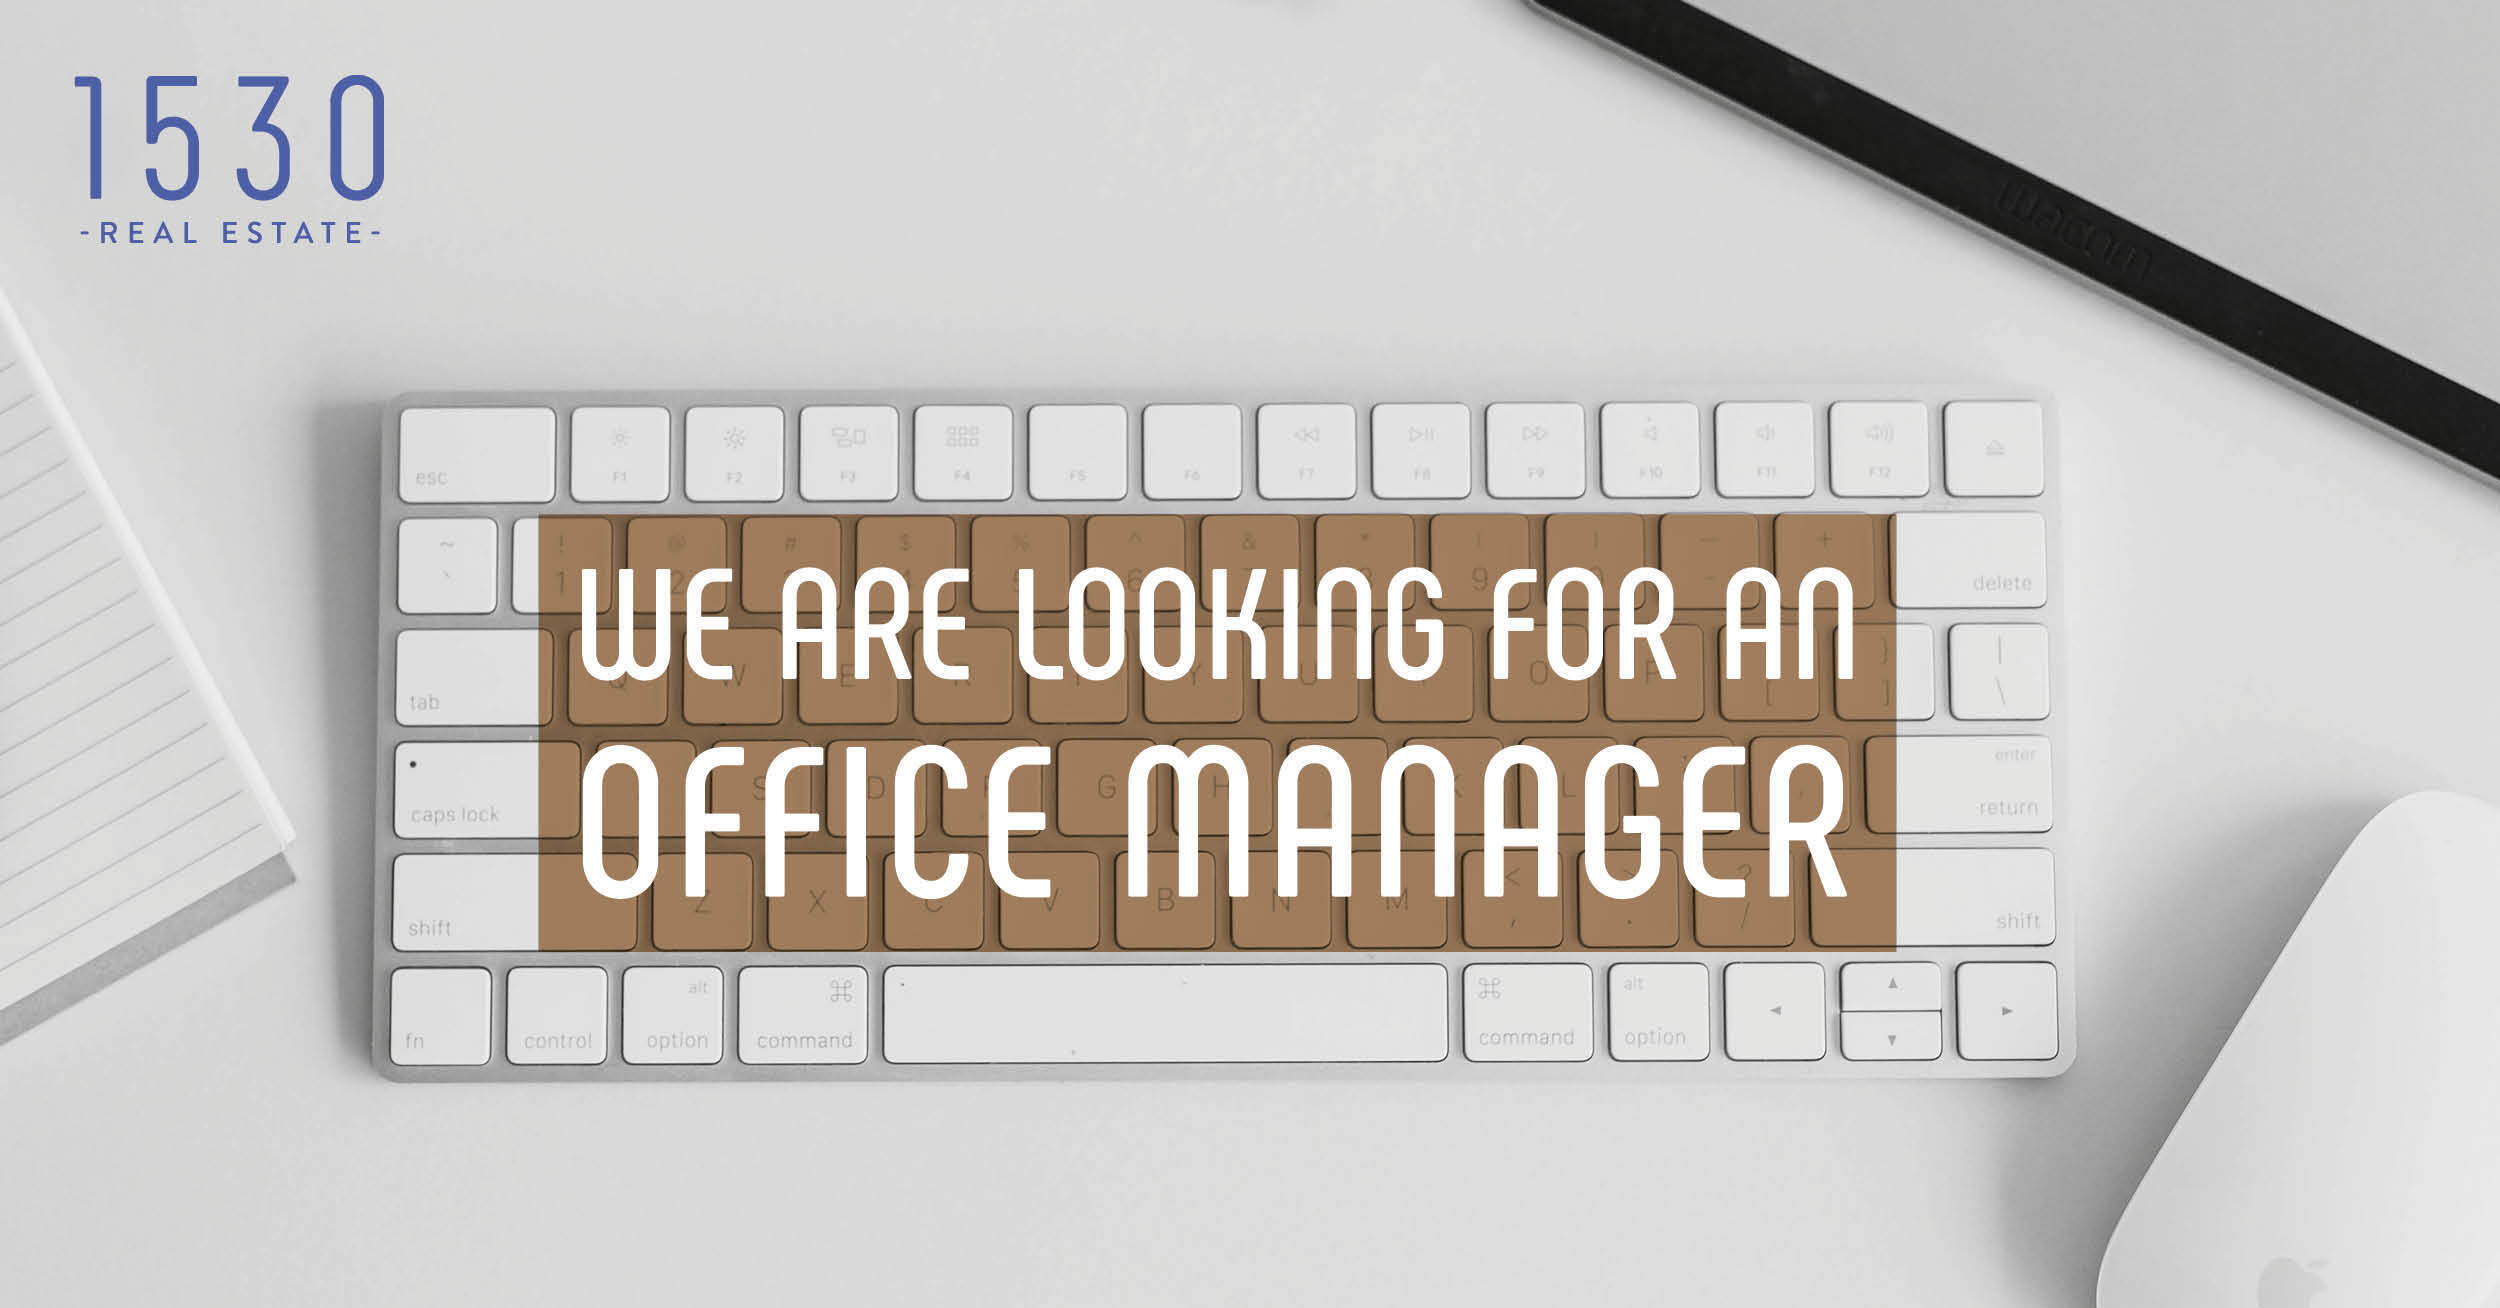 vacature office manager 1530